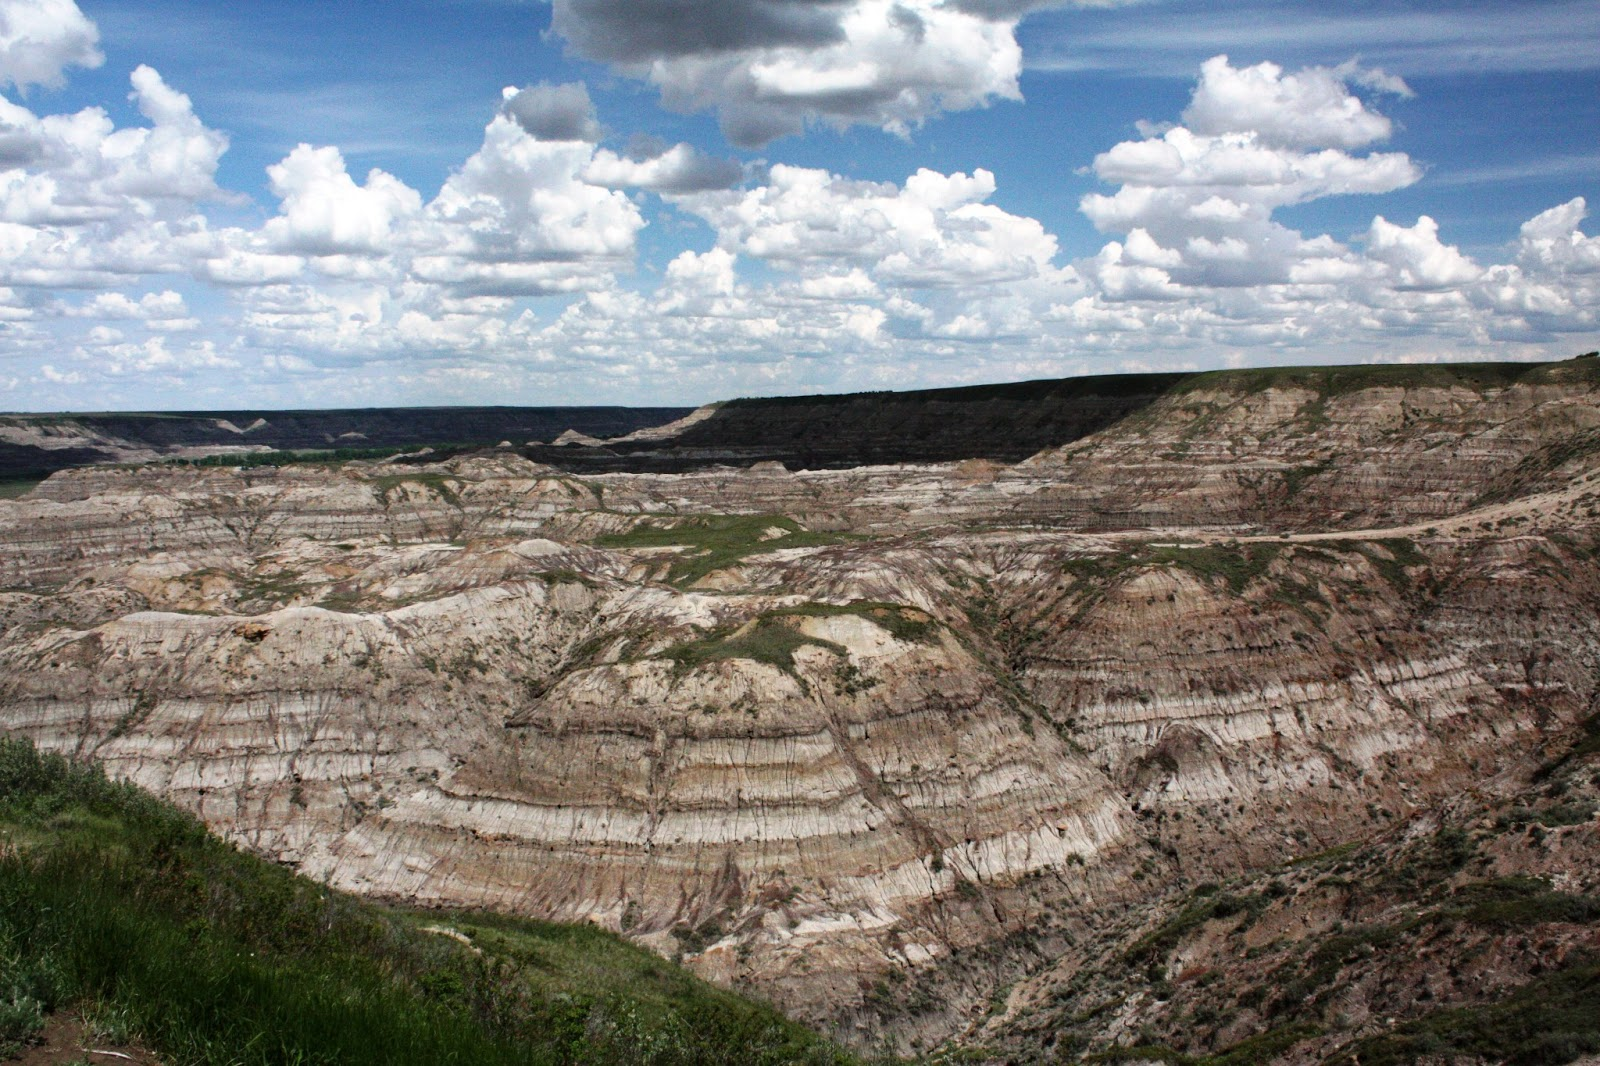 004 - Horsethief Canyon